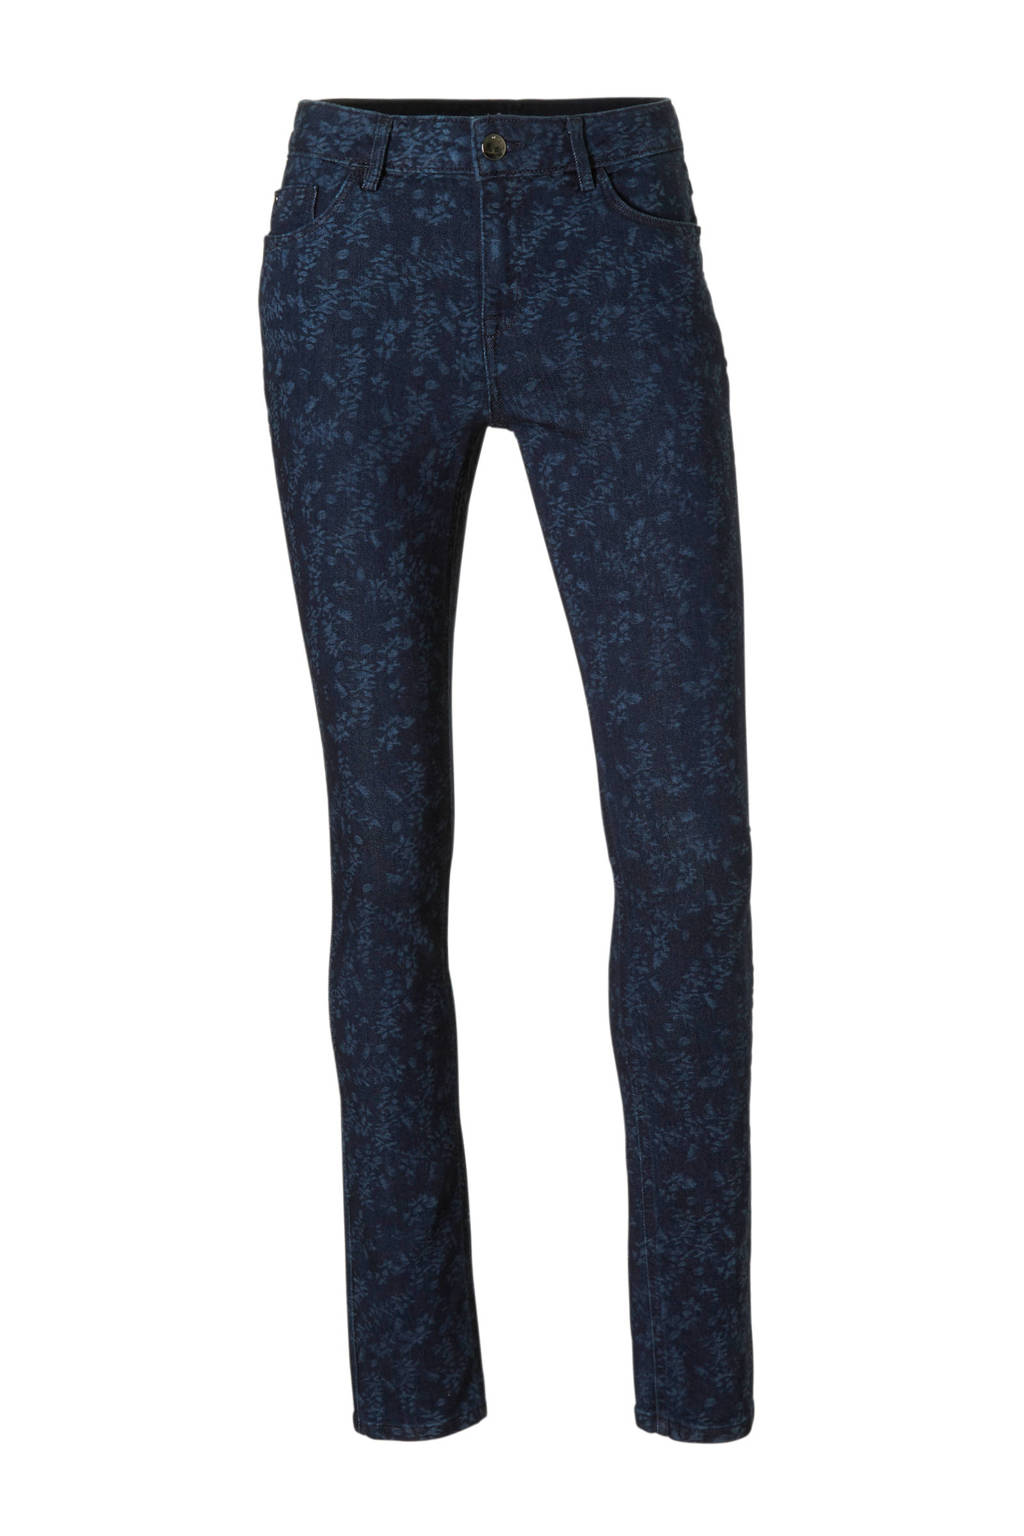 C&A The Denim skinny jeans met allover print, Dark denim